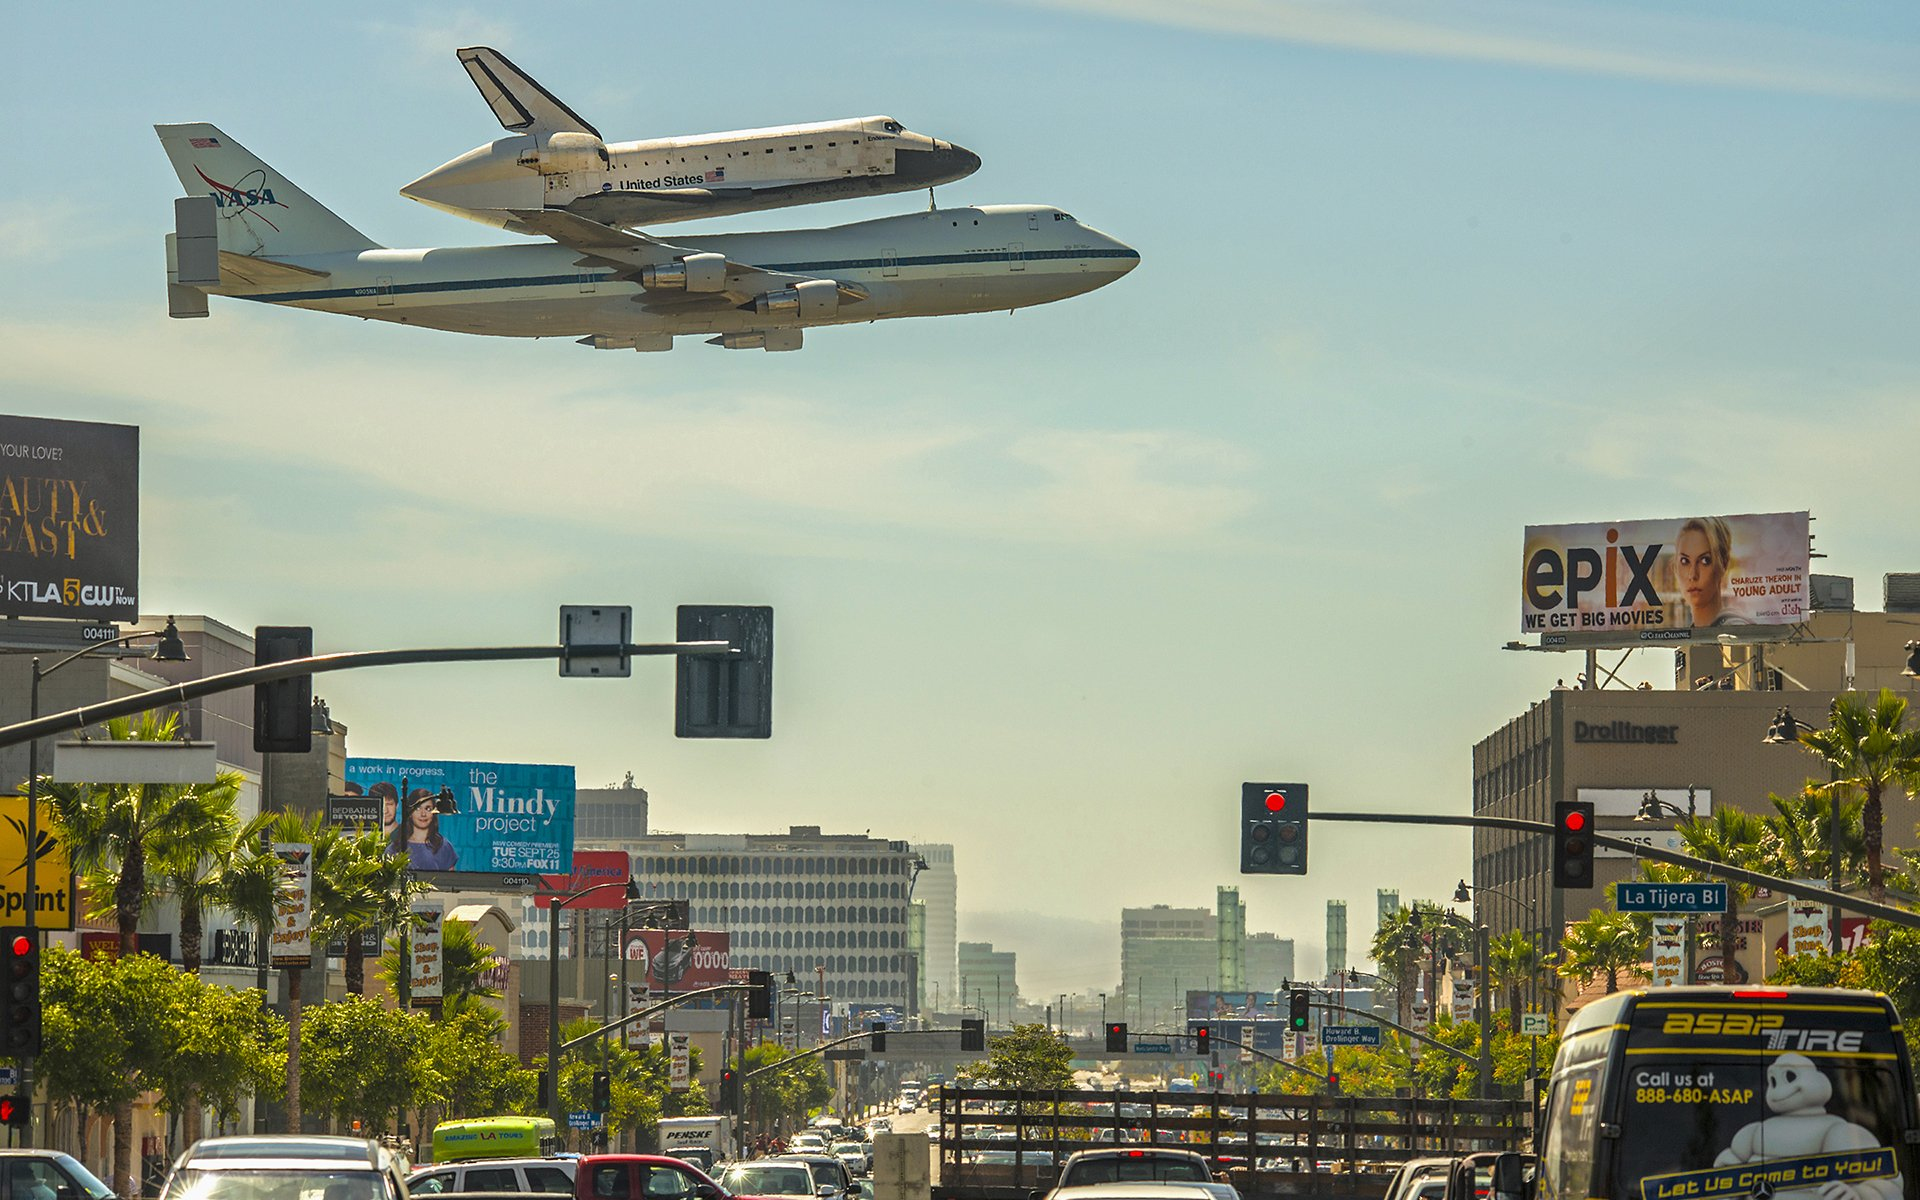 Vehicles - Space Shuttle Endeavour  Shuttle Airplane NASA Los Angeles Street Space Shuttle Wallpaper